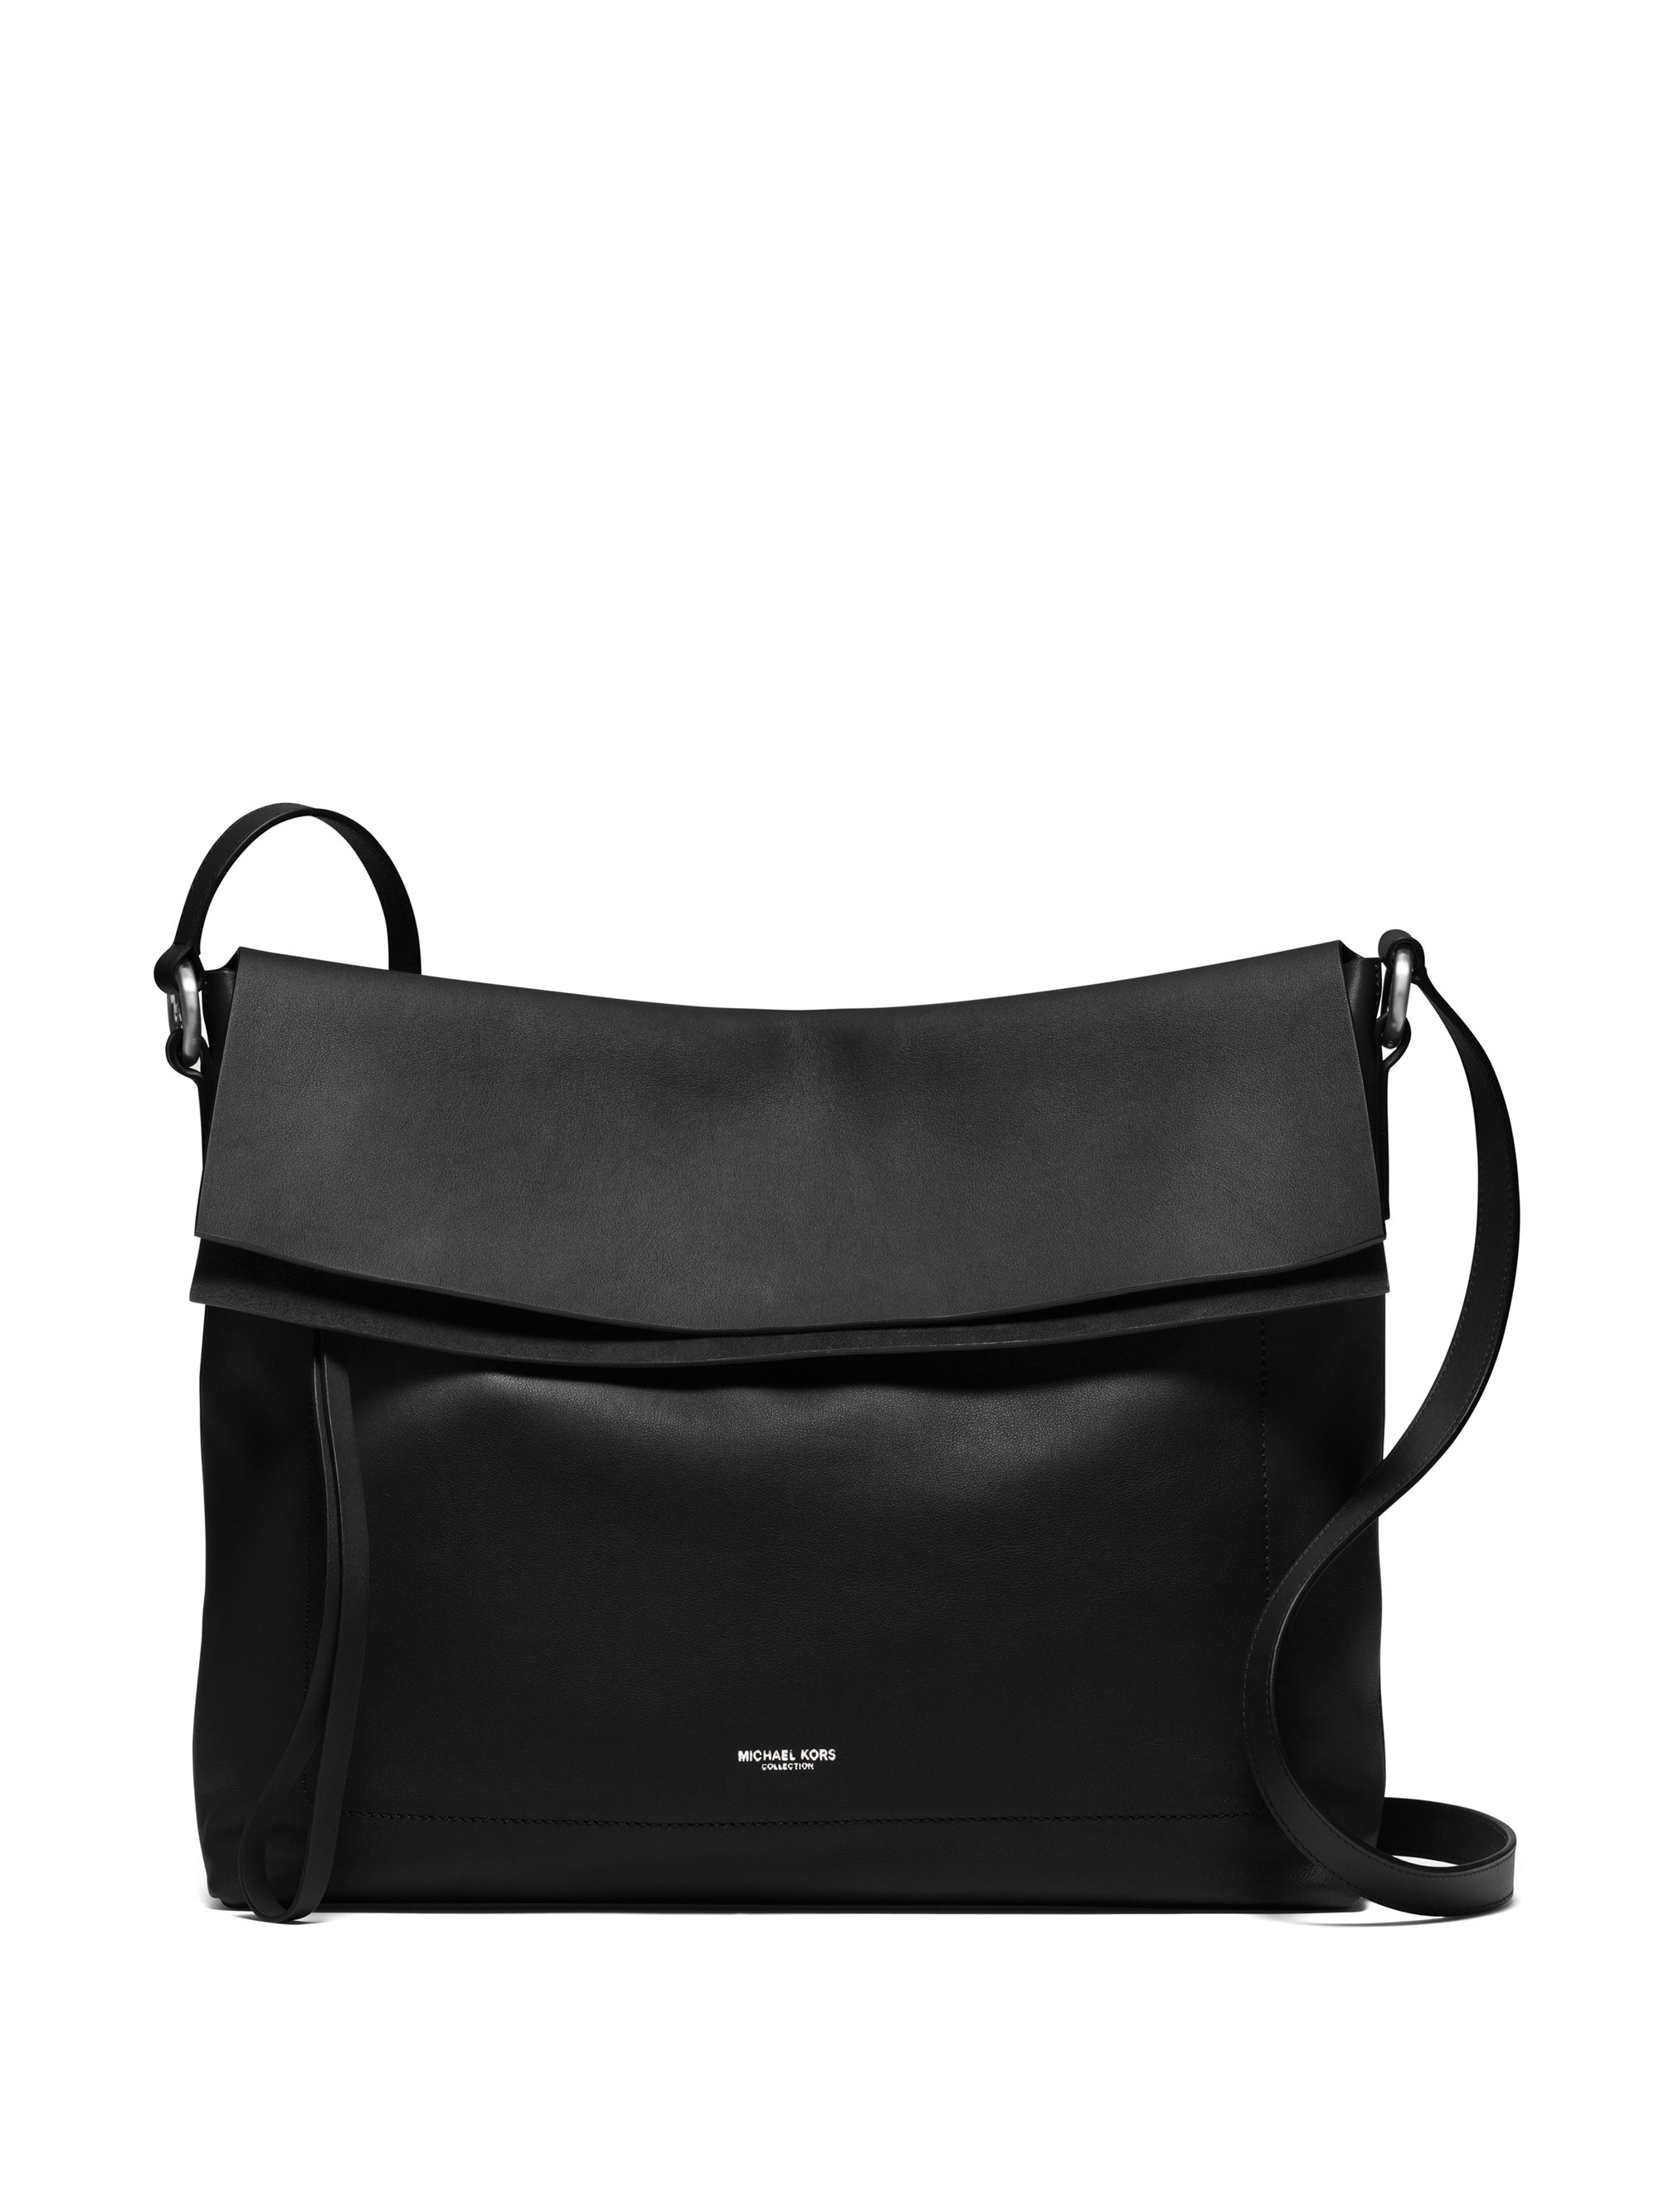 Michael kors Sedona Large Messenger Bag in Black | Lyst